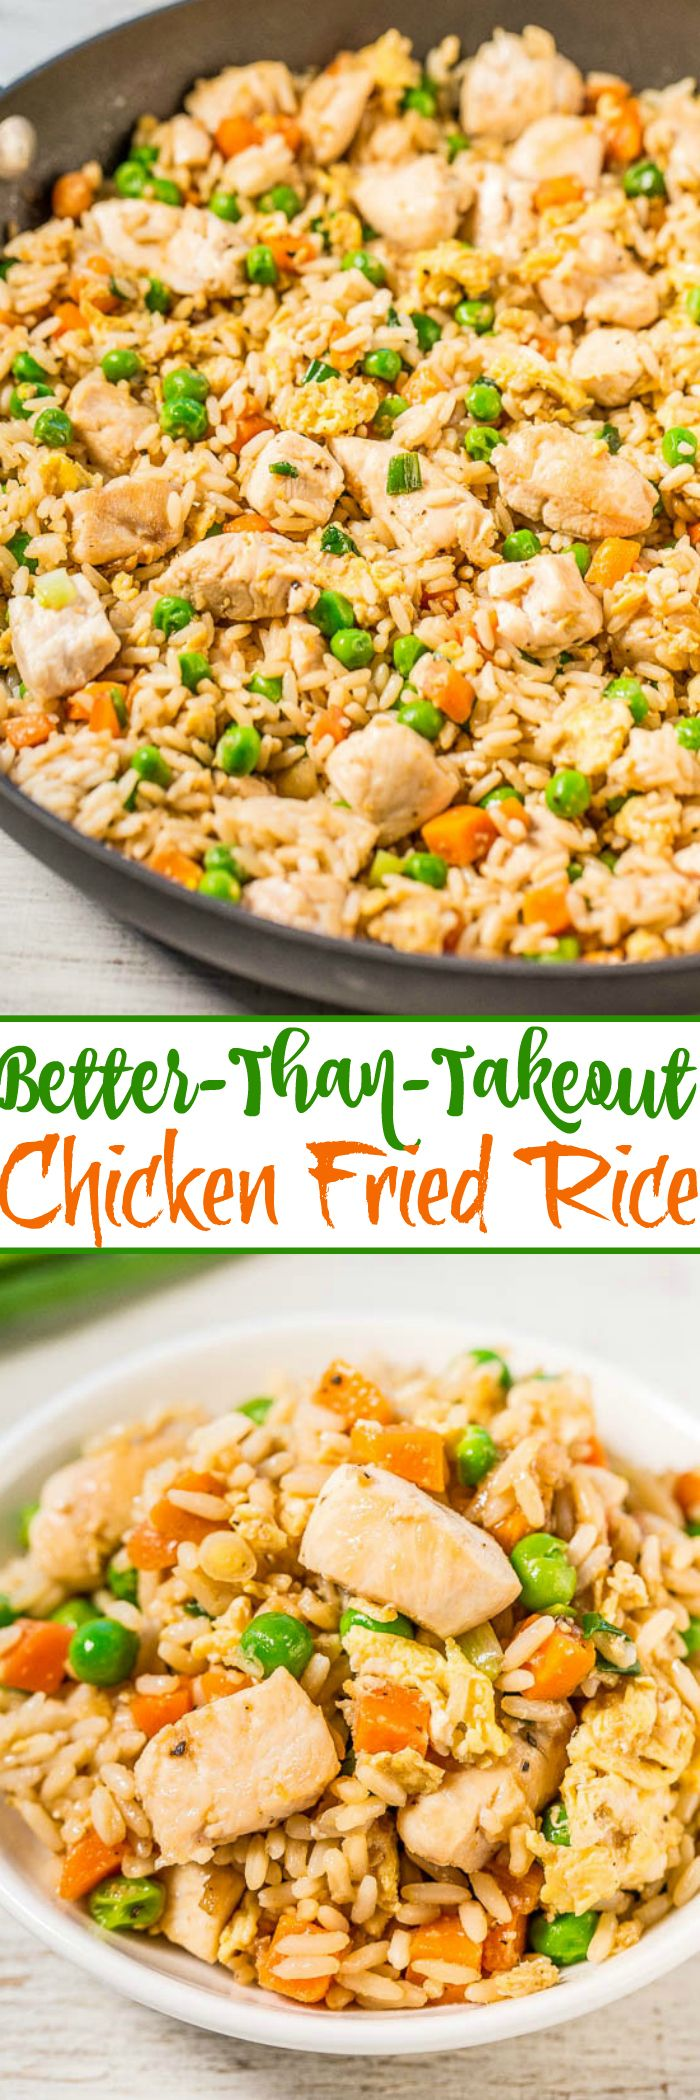 Easy Better-Than-Takeout Chicken Fried Rice (via Bloglovin.com )